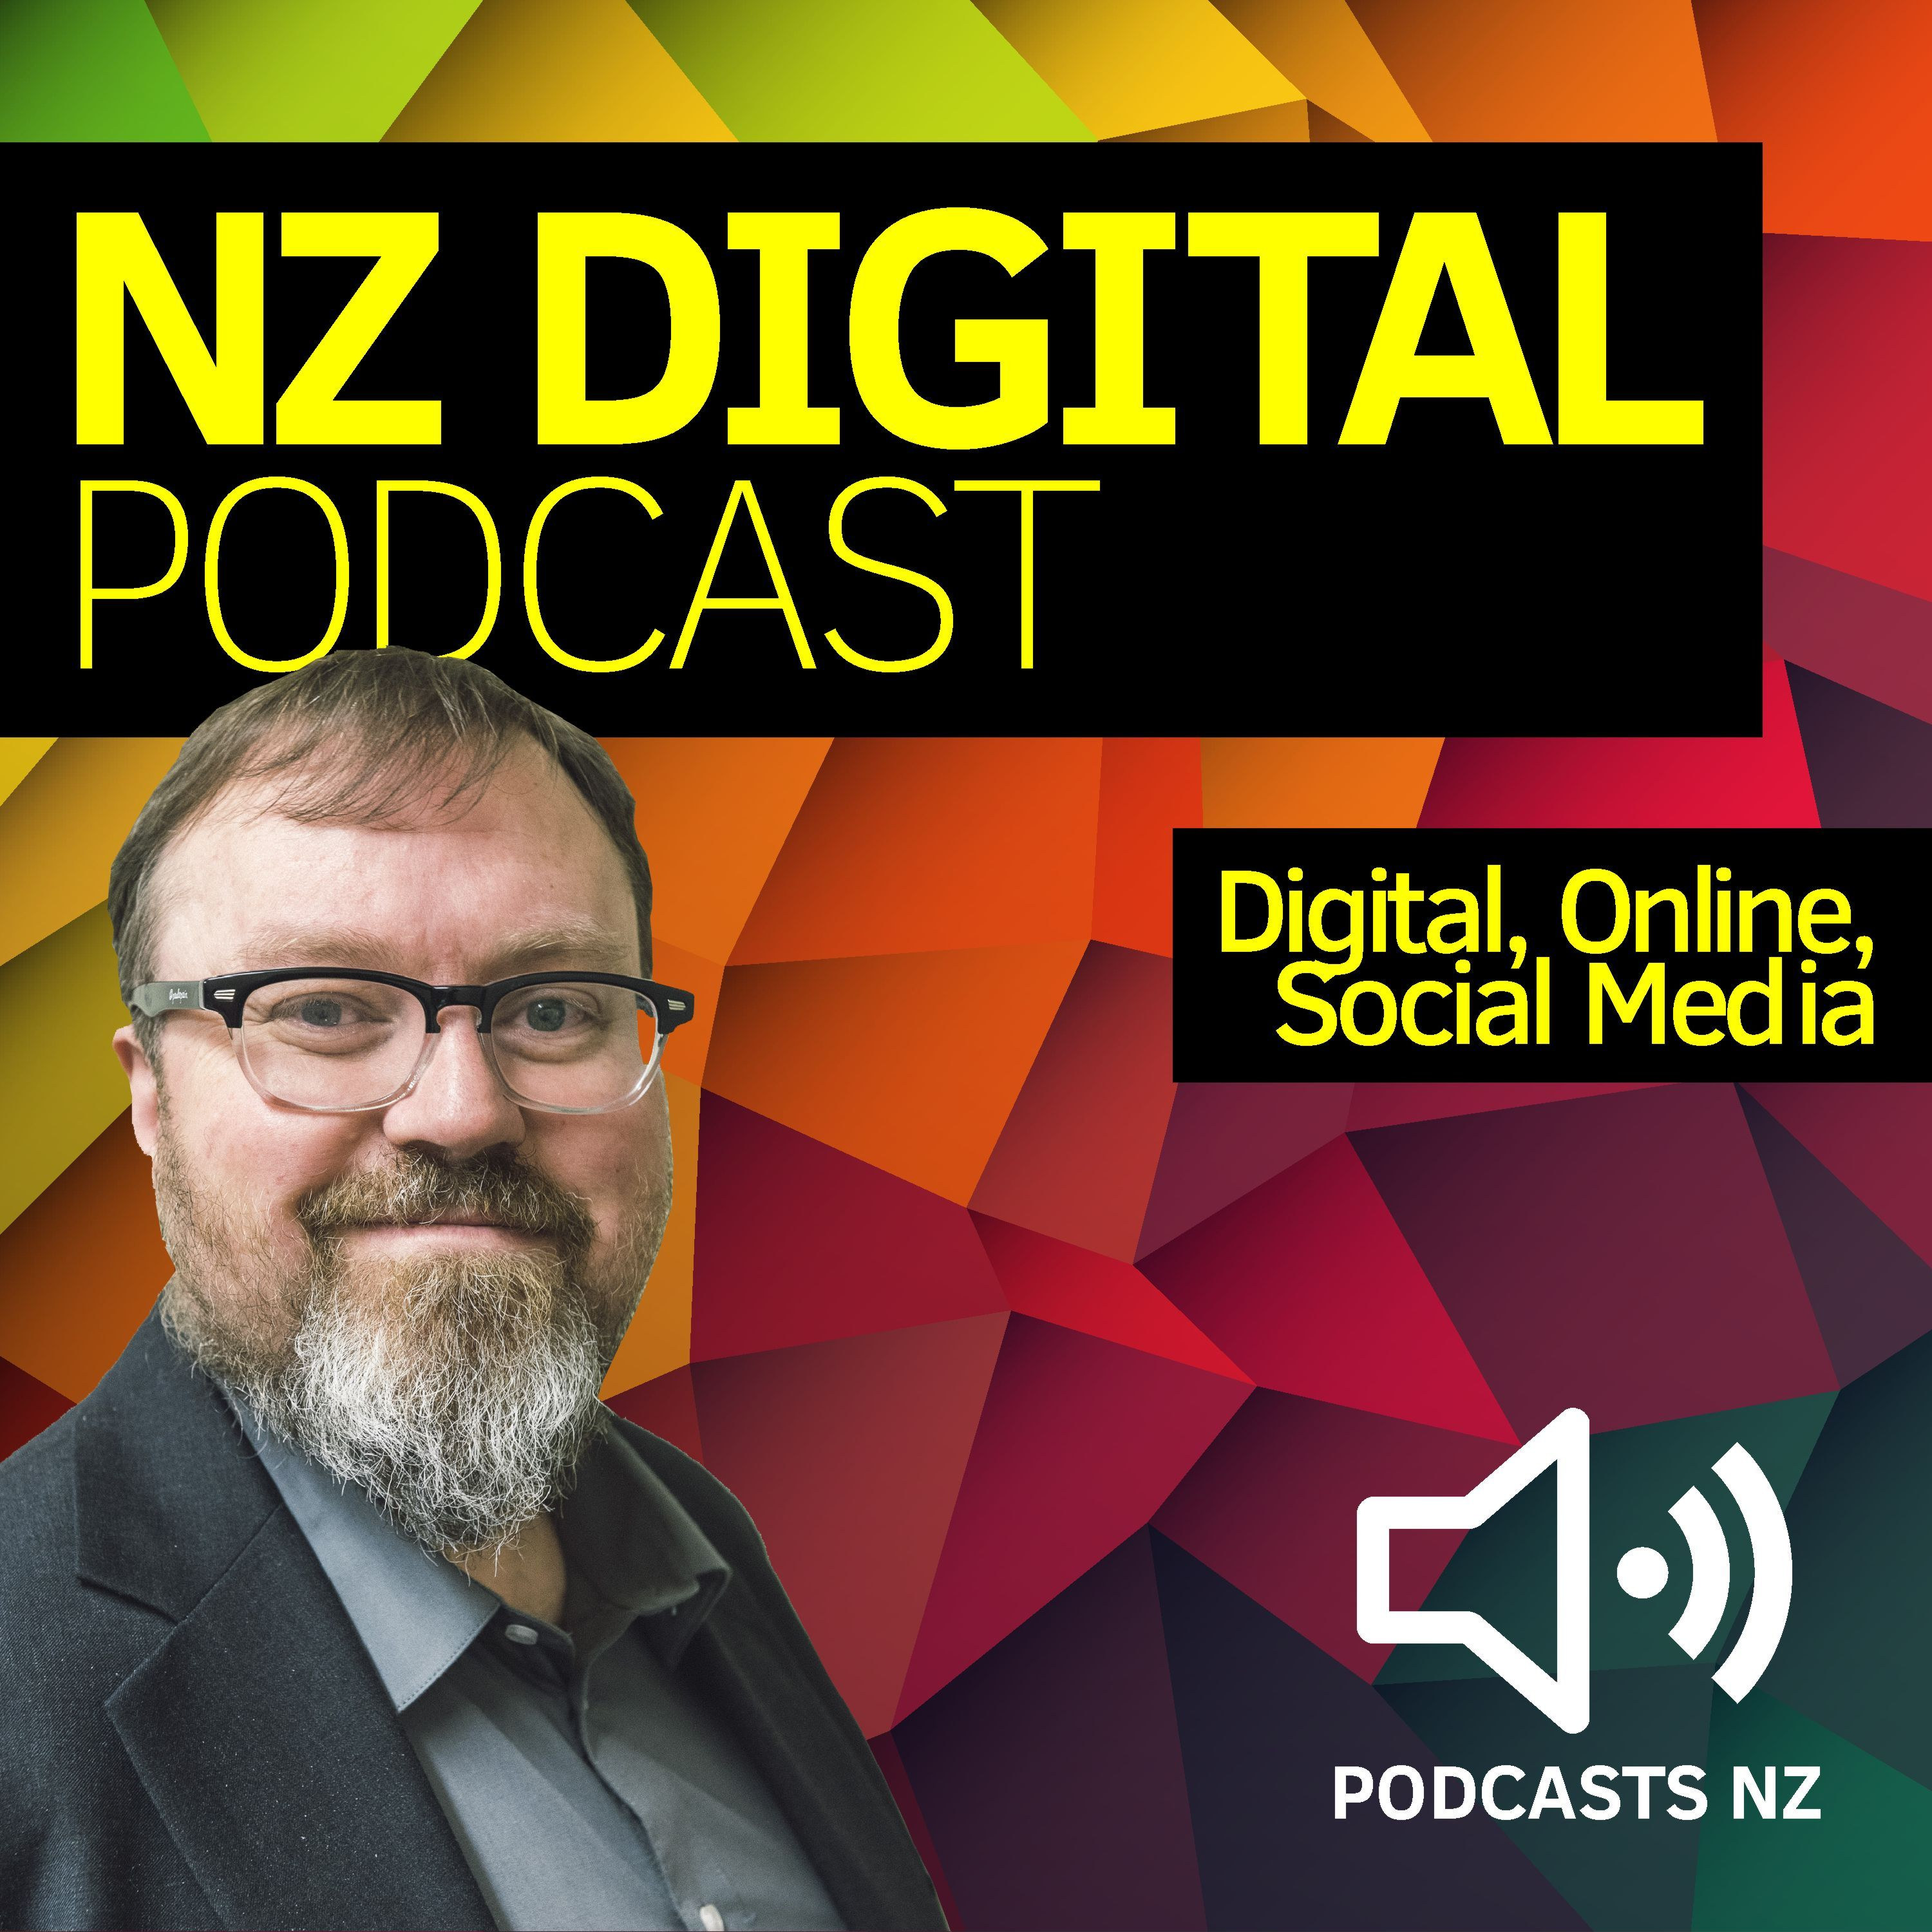 NZ Digital Podcast